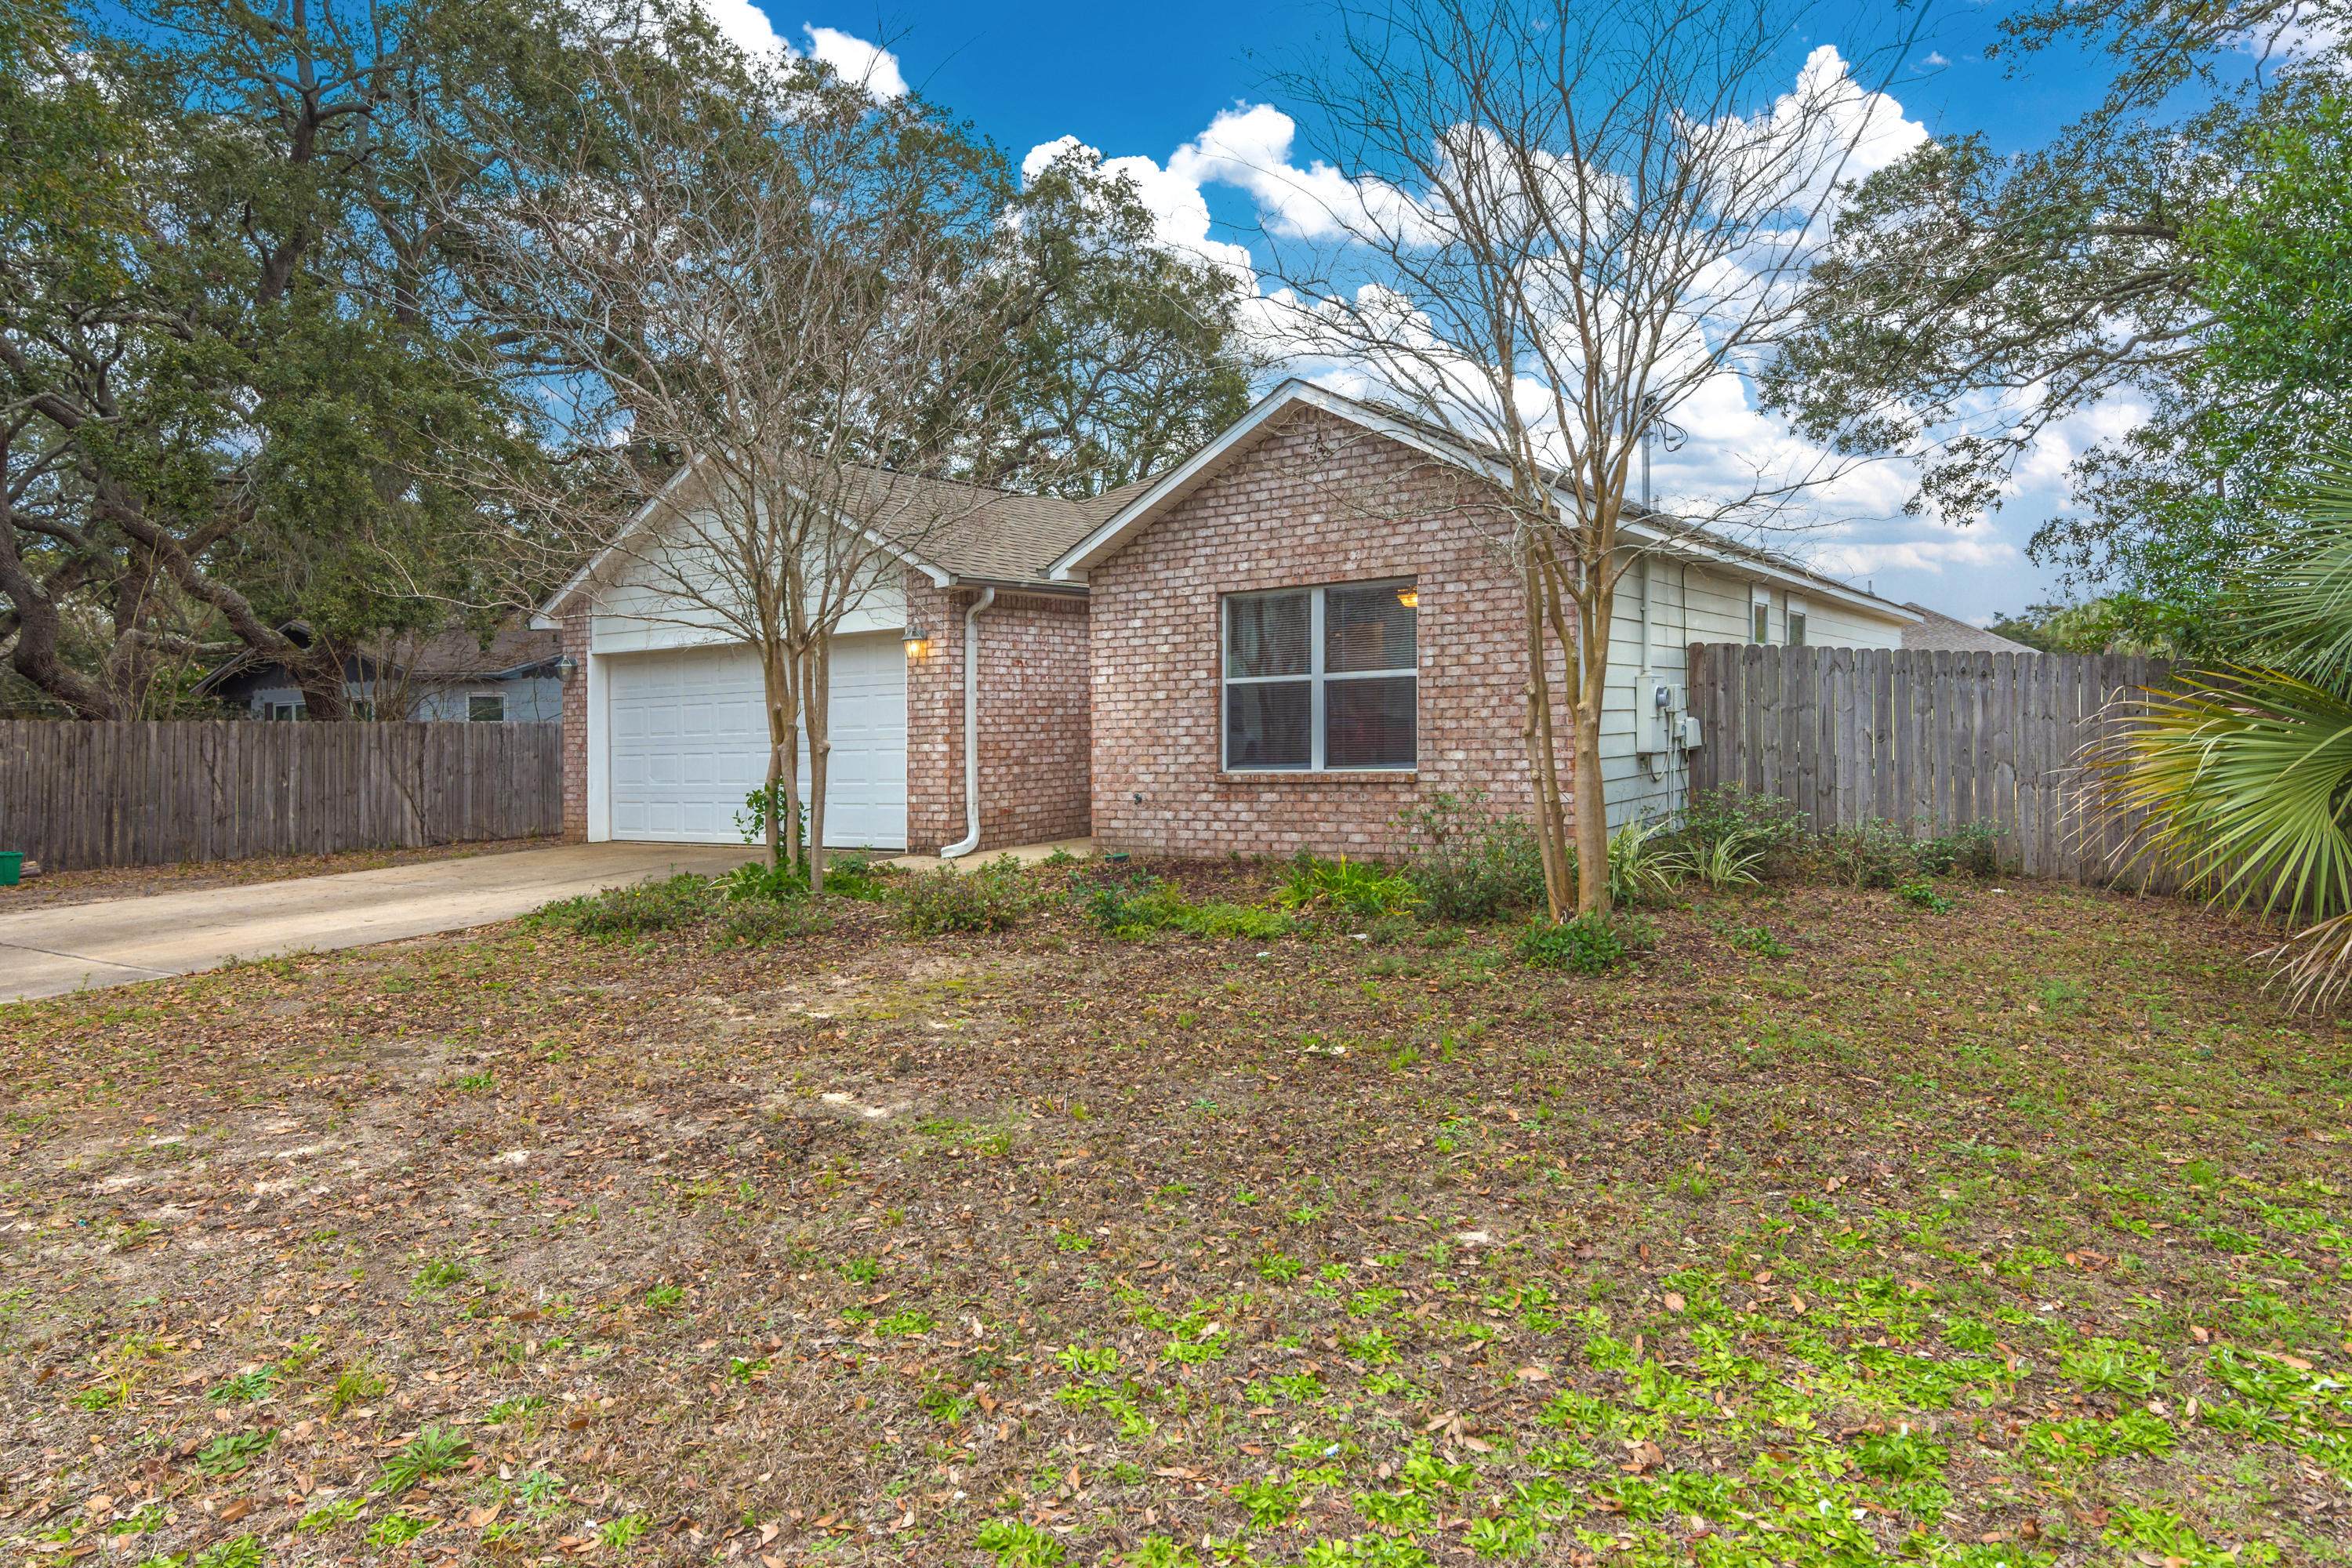 Photo of home for sale at 695 Tyner, Fort Walton Beach FL